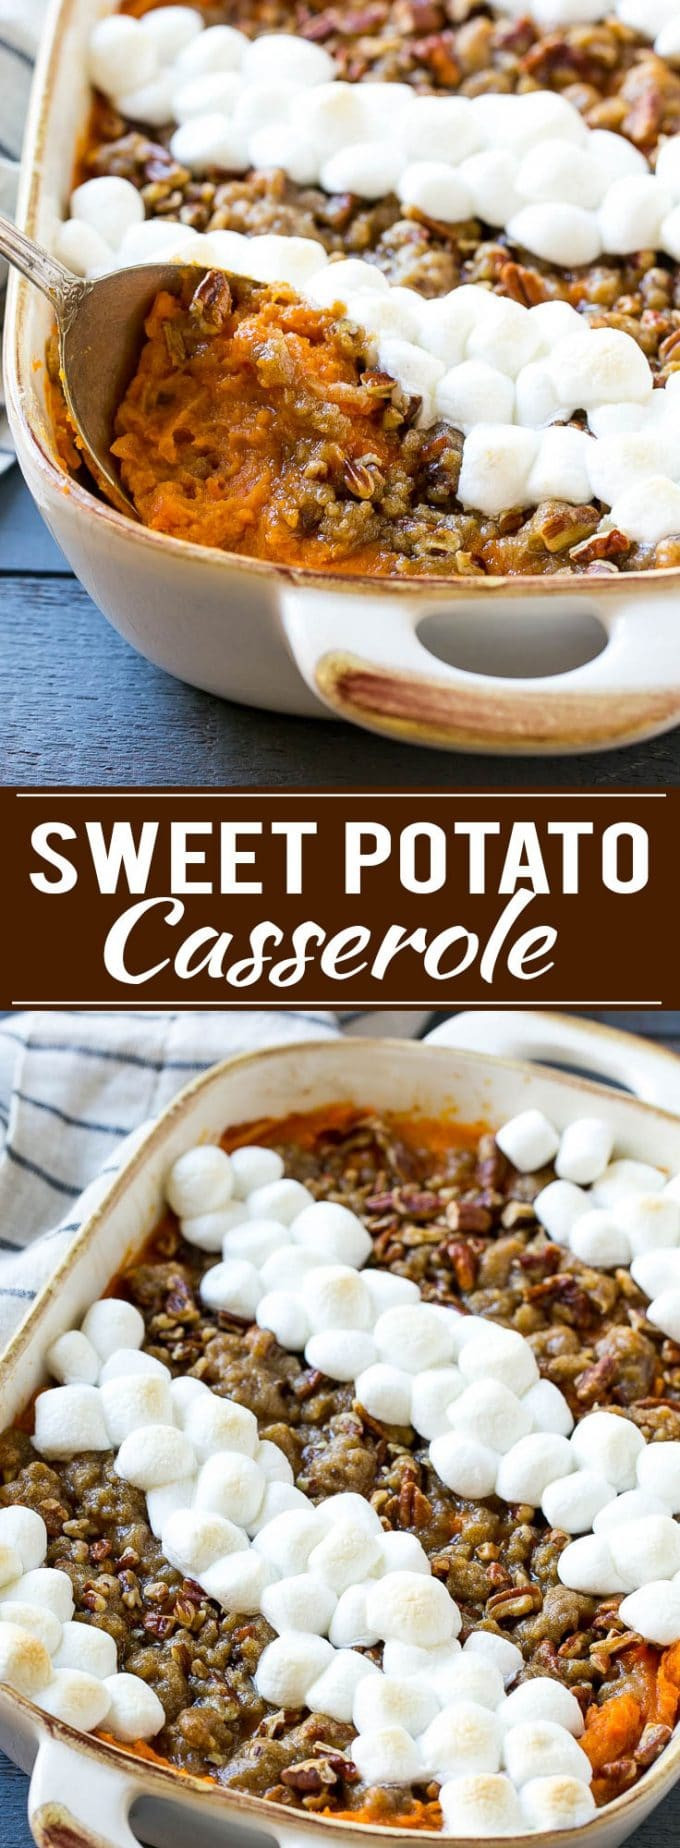 Sweet Potato Casserole With Pecans And Marshmallows  sweet potato casserole with pecan and marshmallow topping